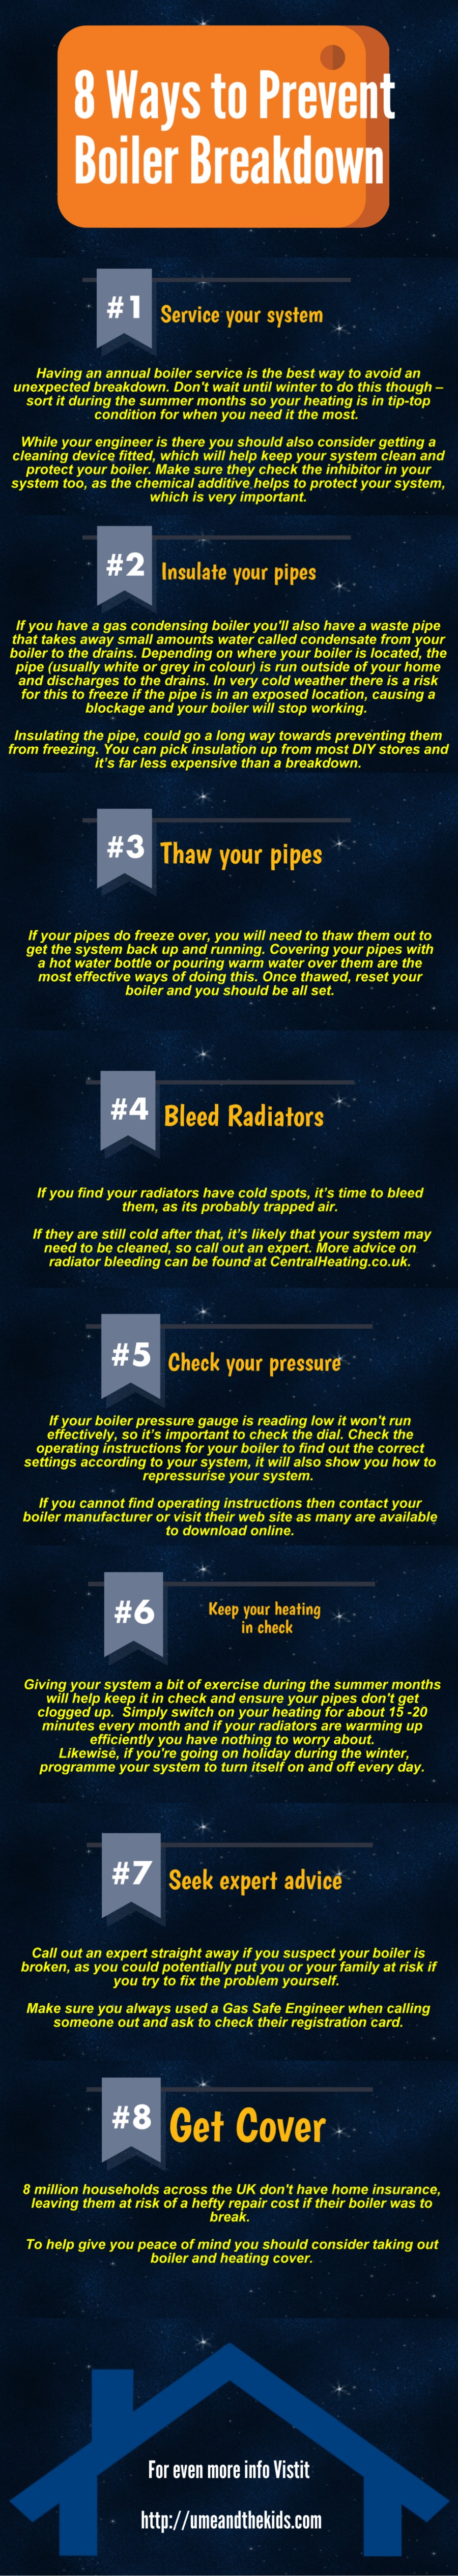 8 top tips to prevent boiler breakdowns all year round infographic size 900x5064